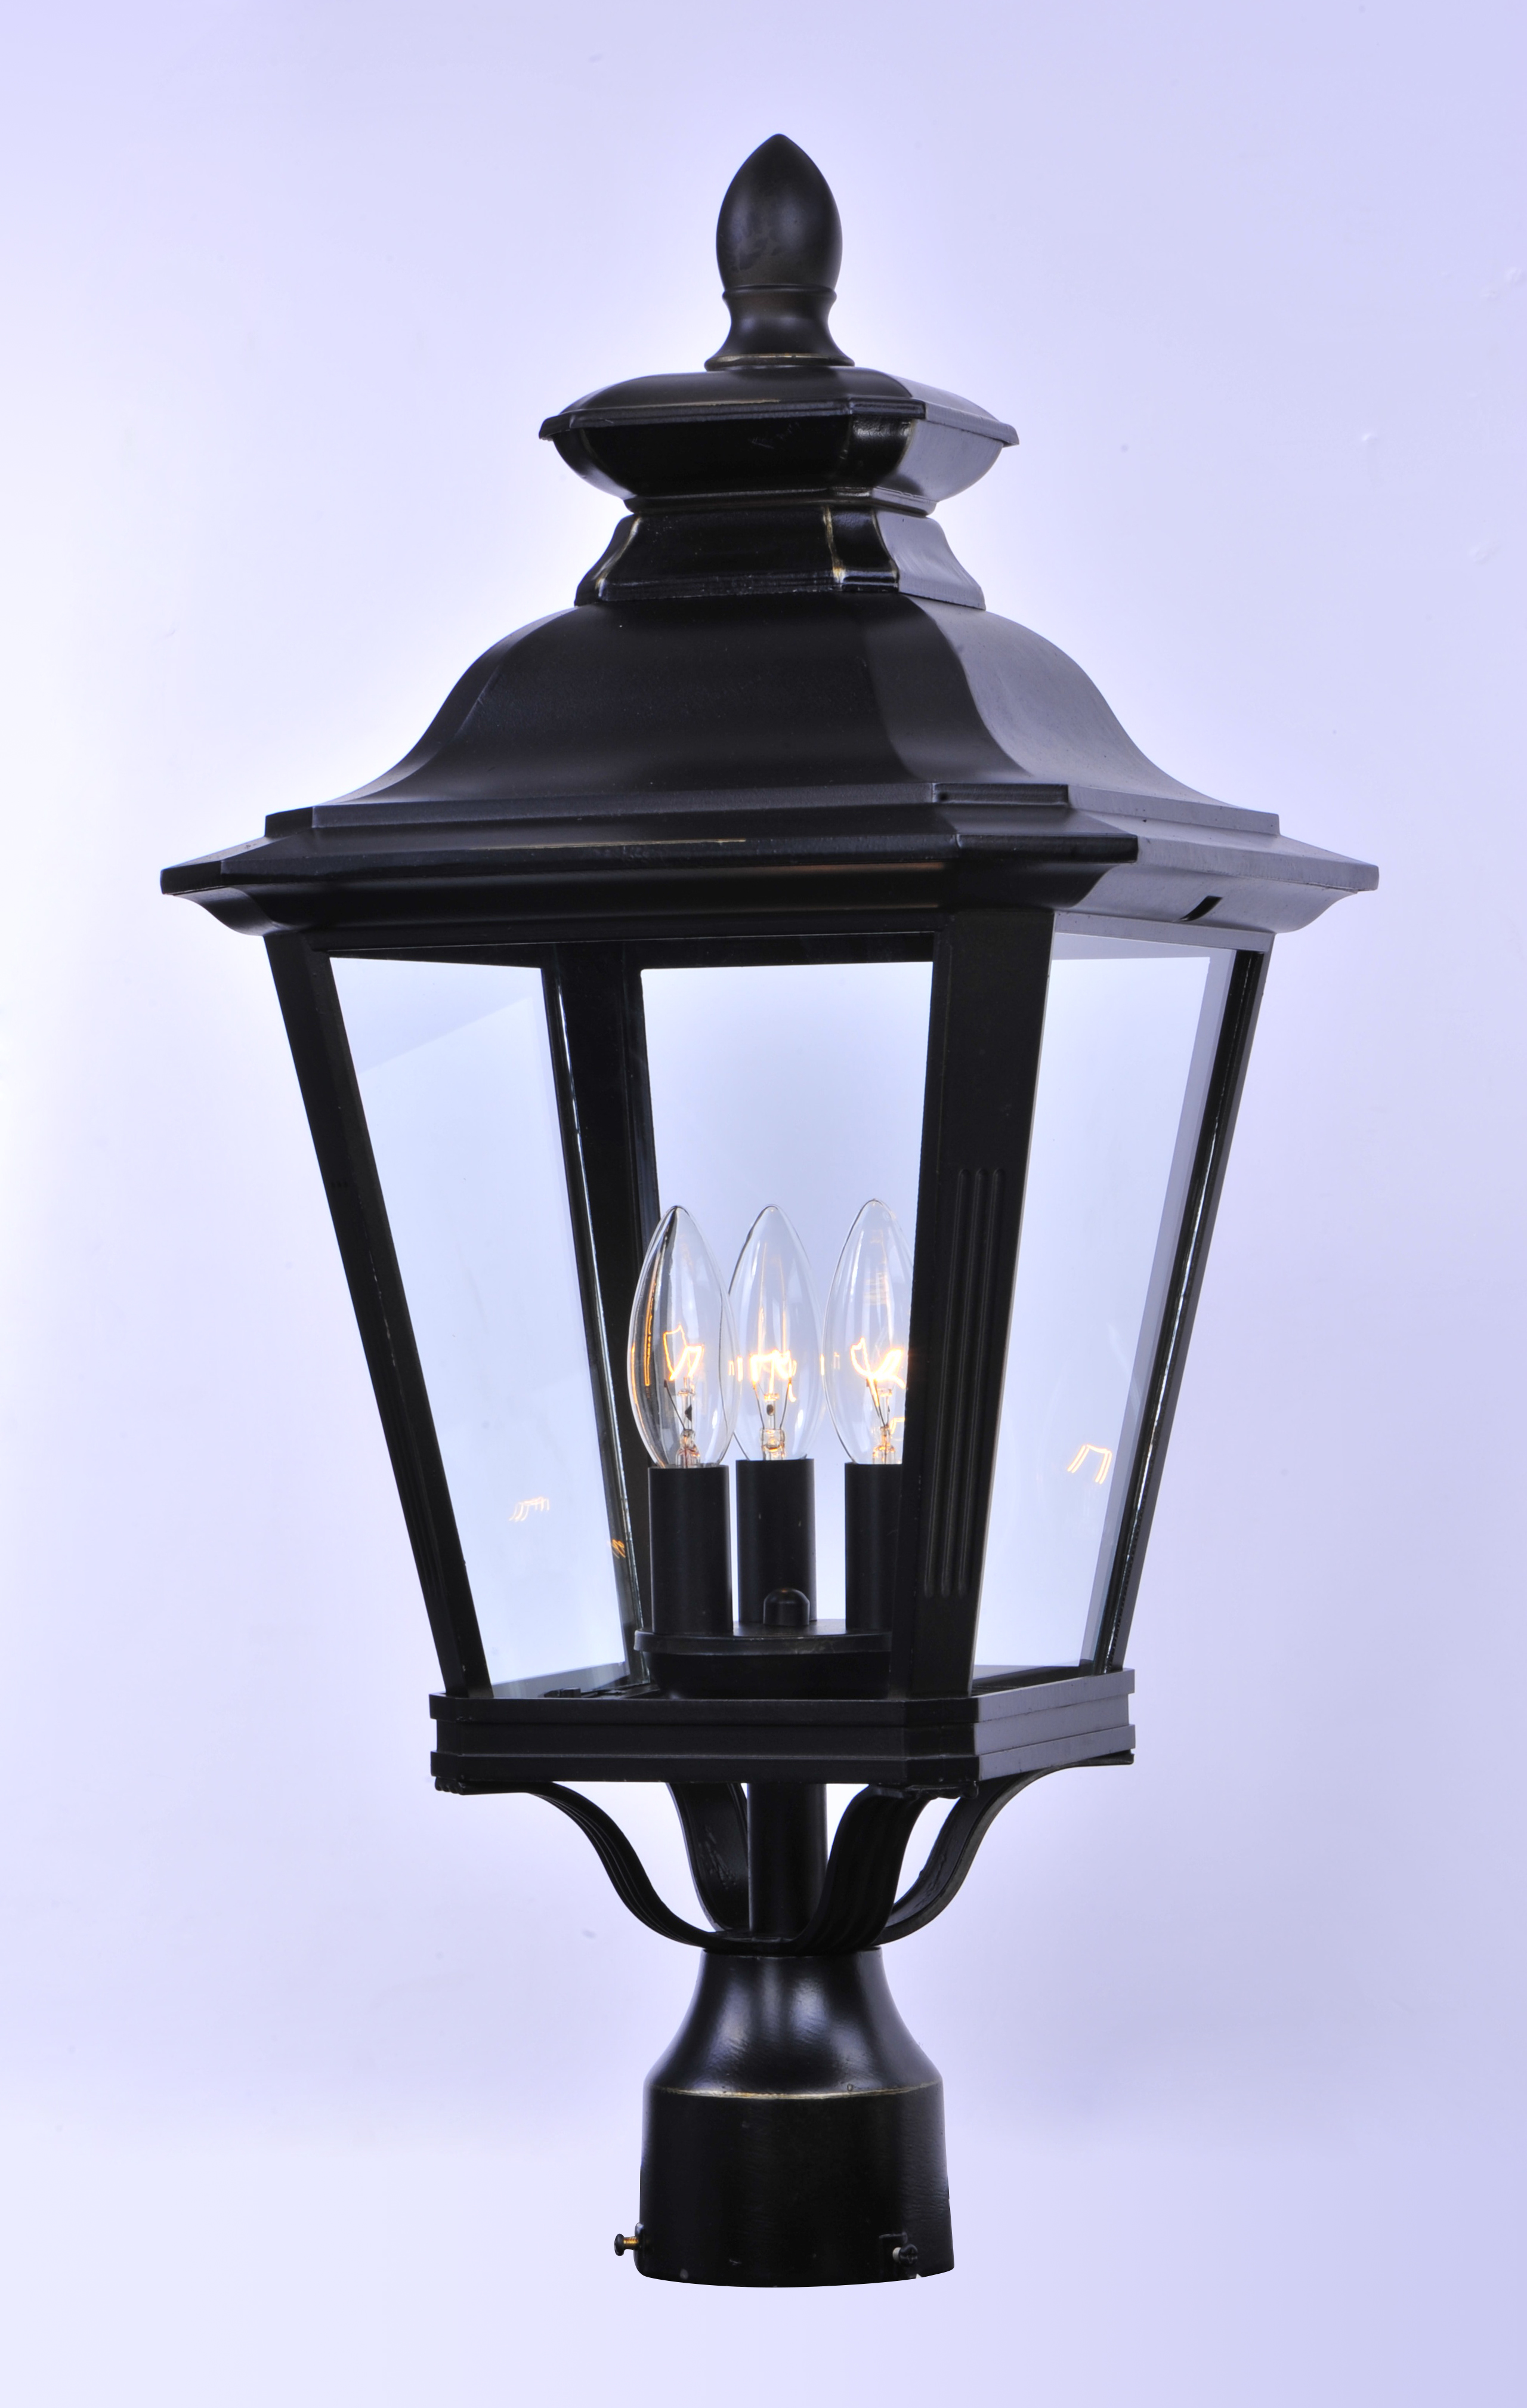 Knoxville 3 light outdoor post outdoor pole post mount for Outdoor post lights